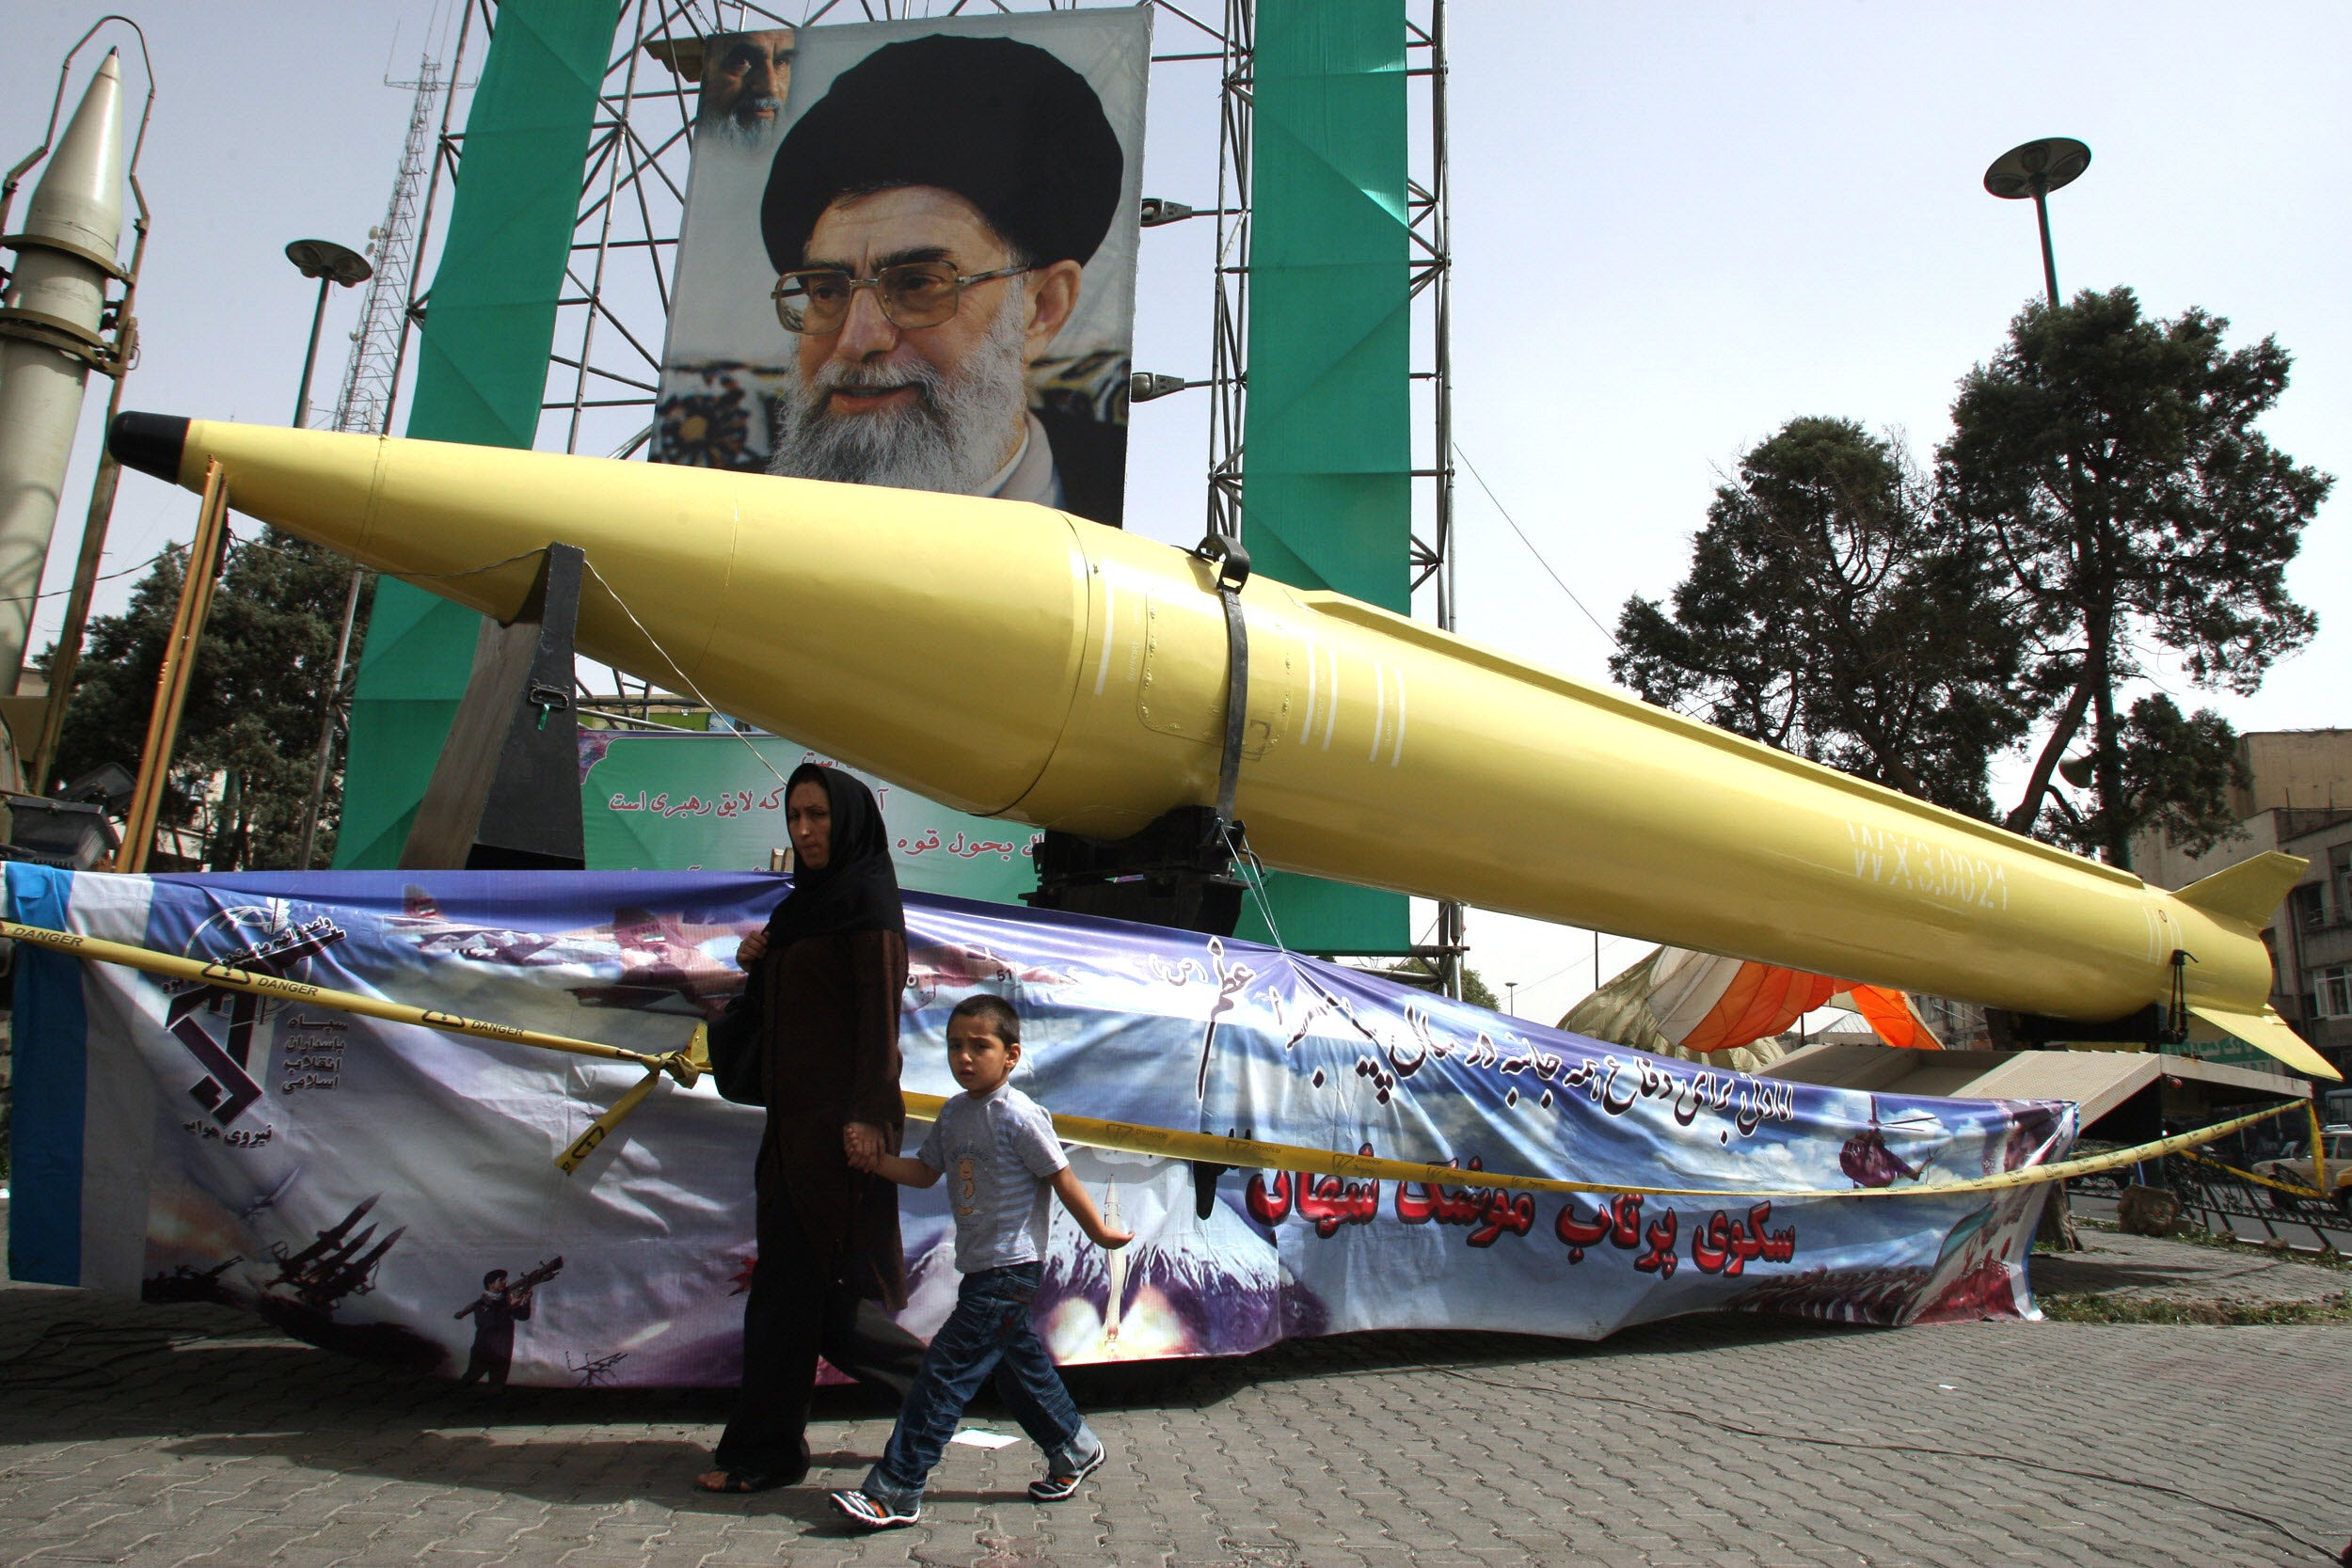 http://dailysignal.com/wp-content/uploads/2009/07/iran_missiles090414.jpg